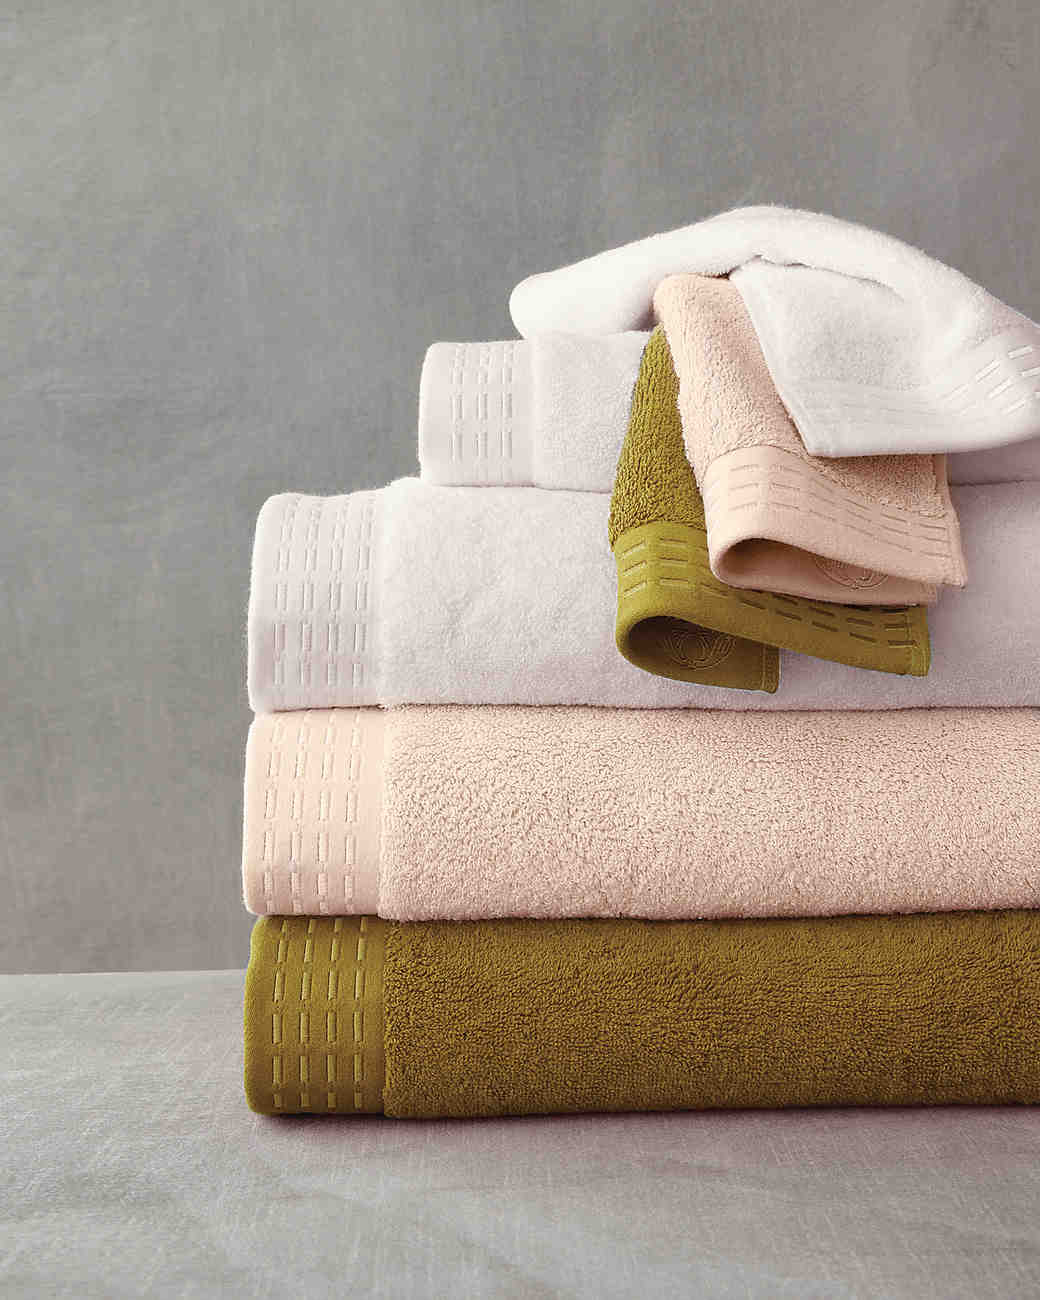 towels-0811mwd107434.jpg